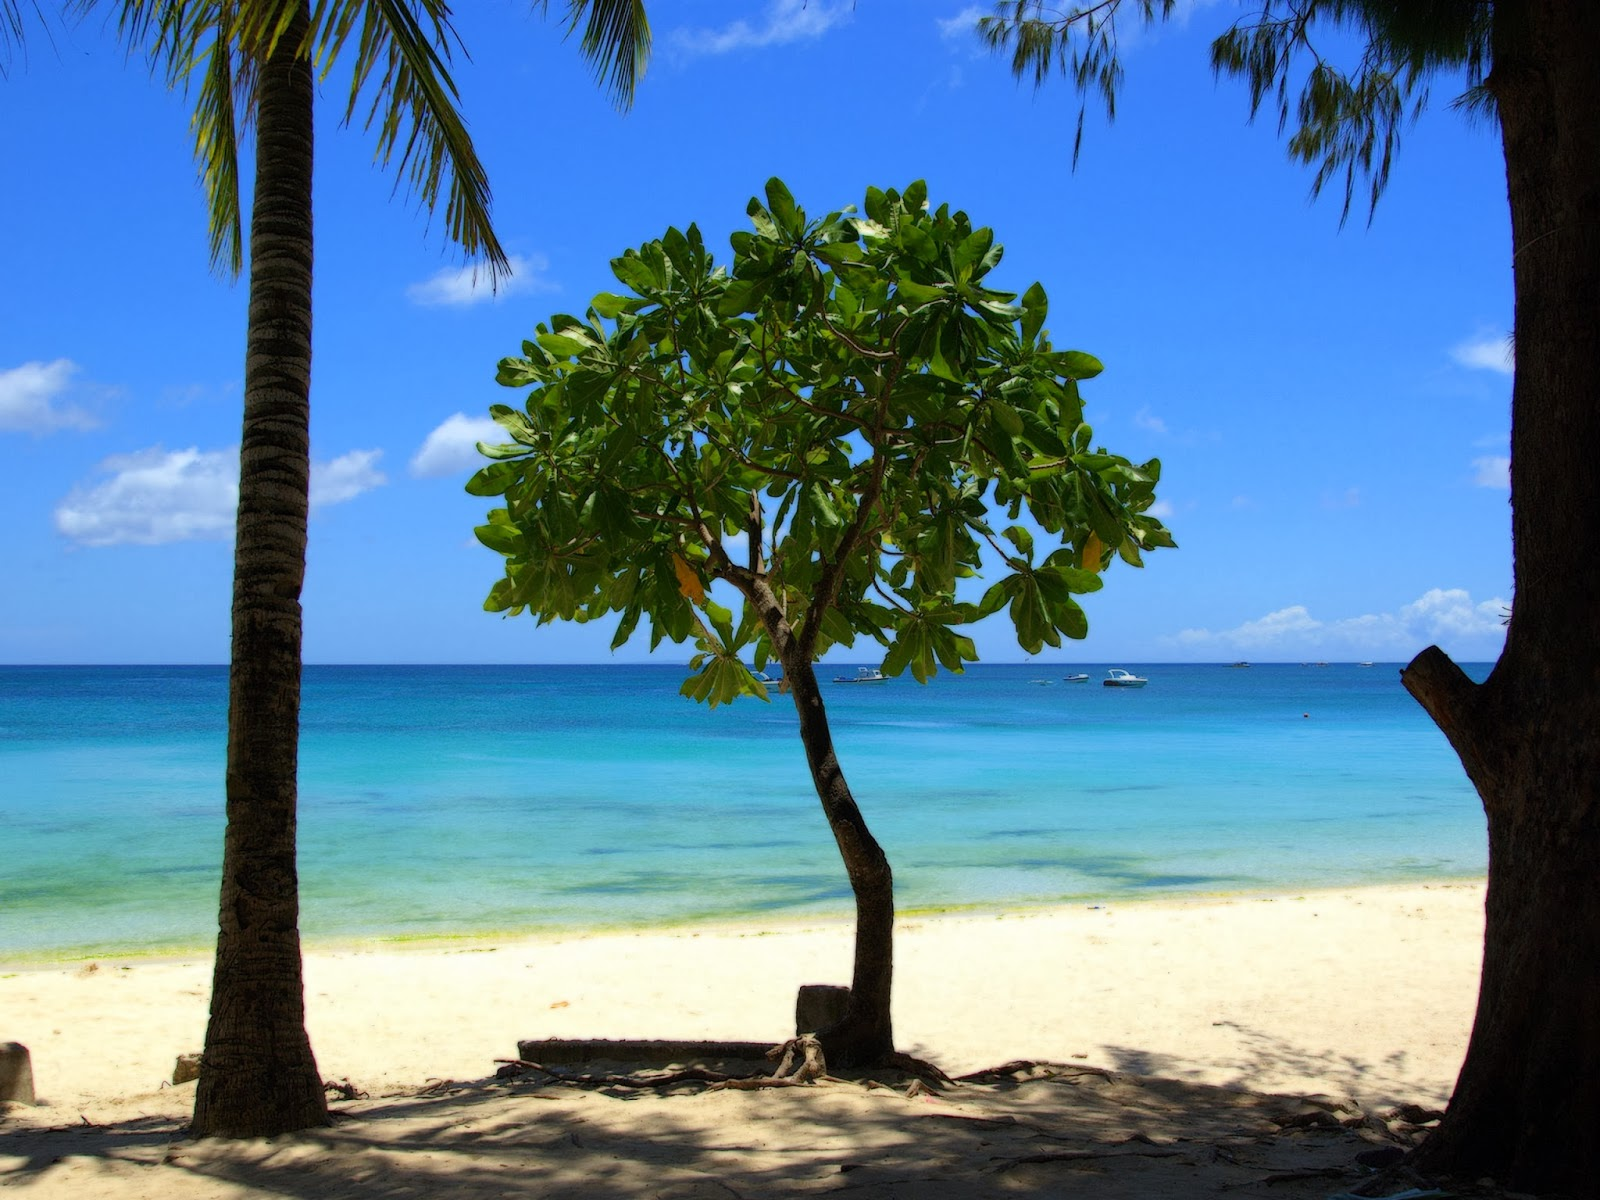 Tropical Beach Image Beautiful Nature Images And Wallpapers